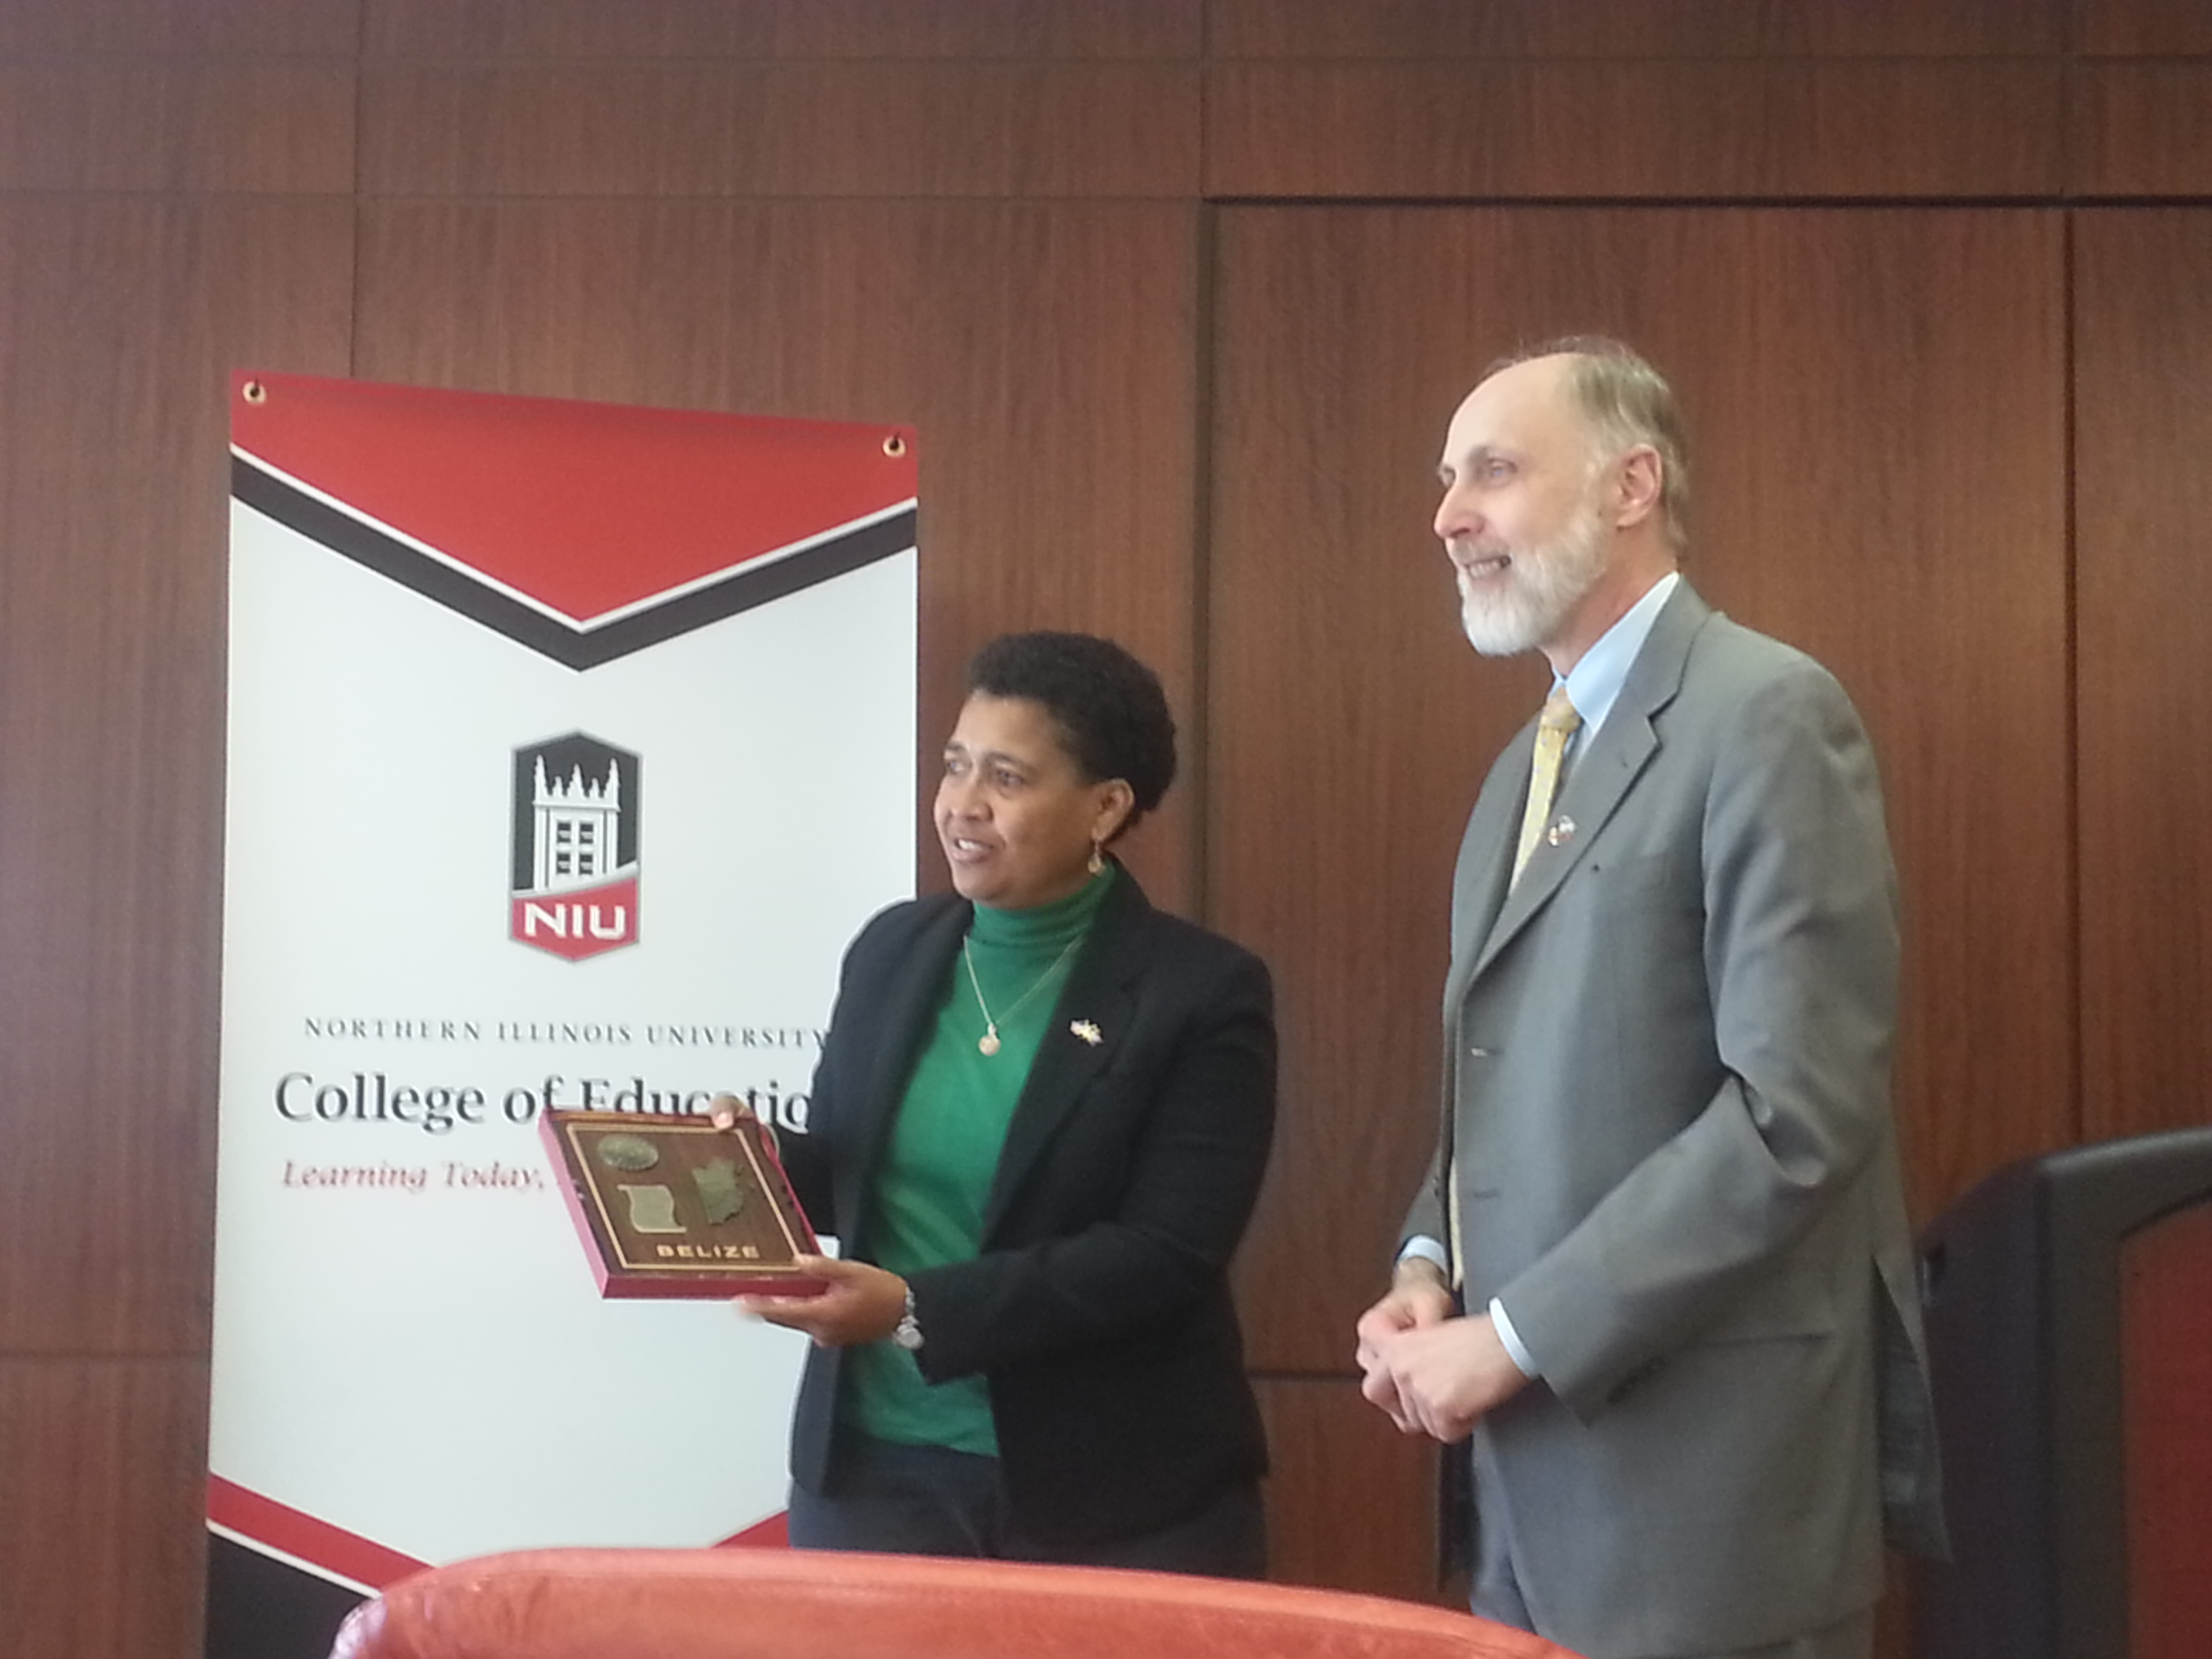 Delegate Clara Cueller presenting a gift to President Baker